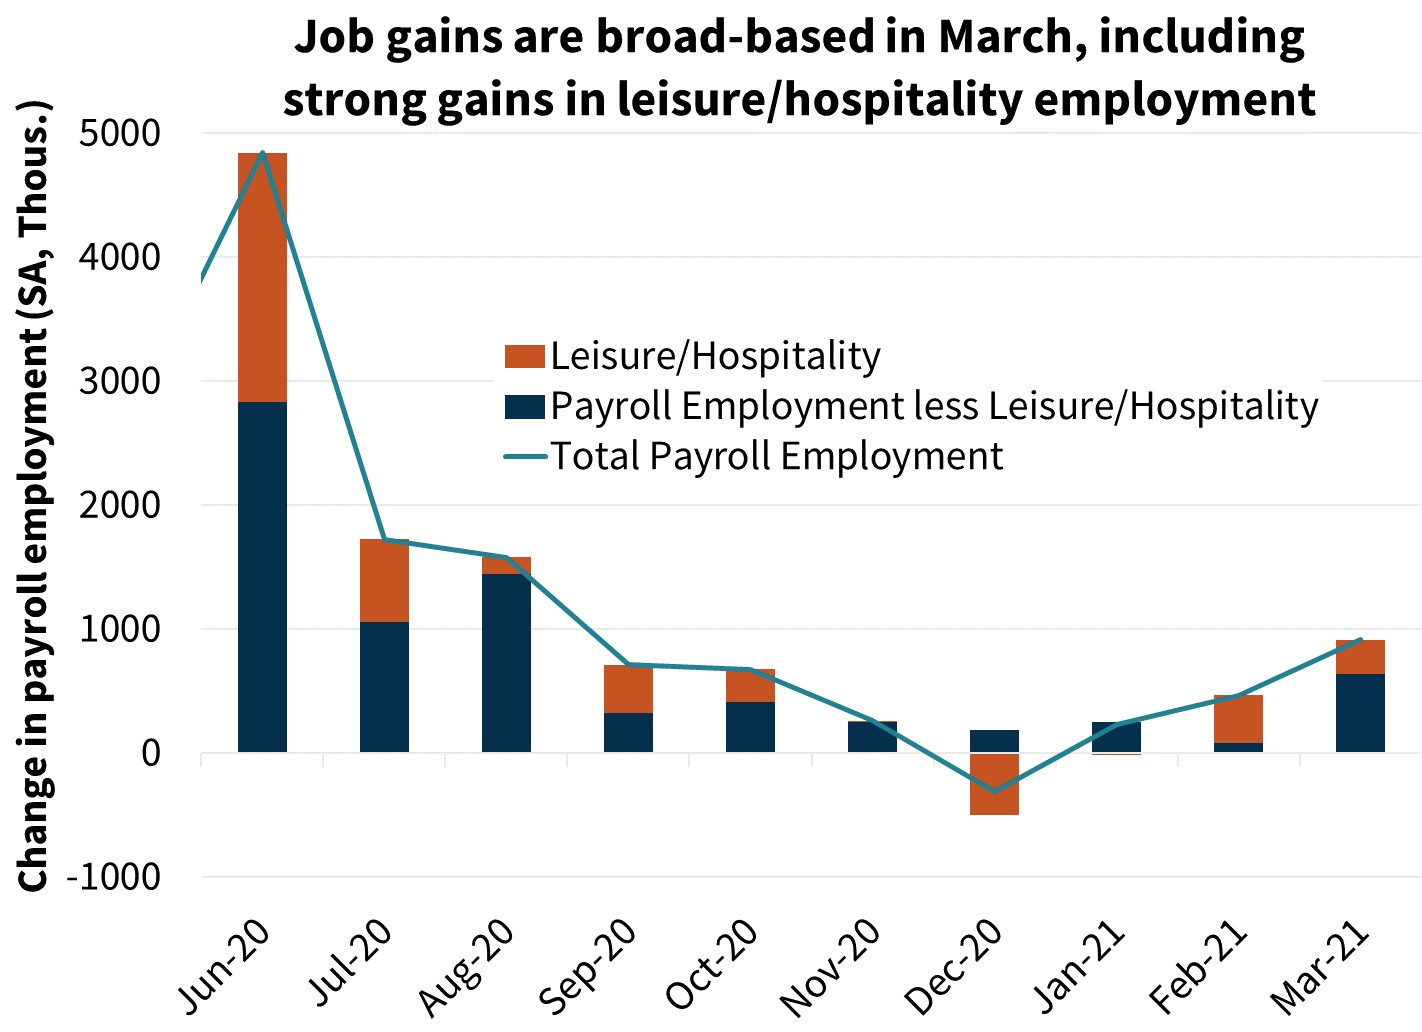 Job gains are broad-based in March, including strong gains in leisure/hospitality employment